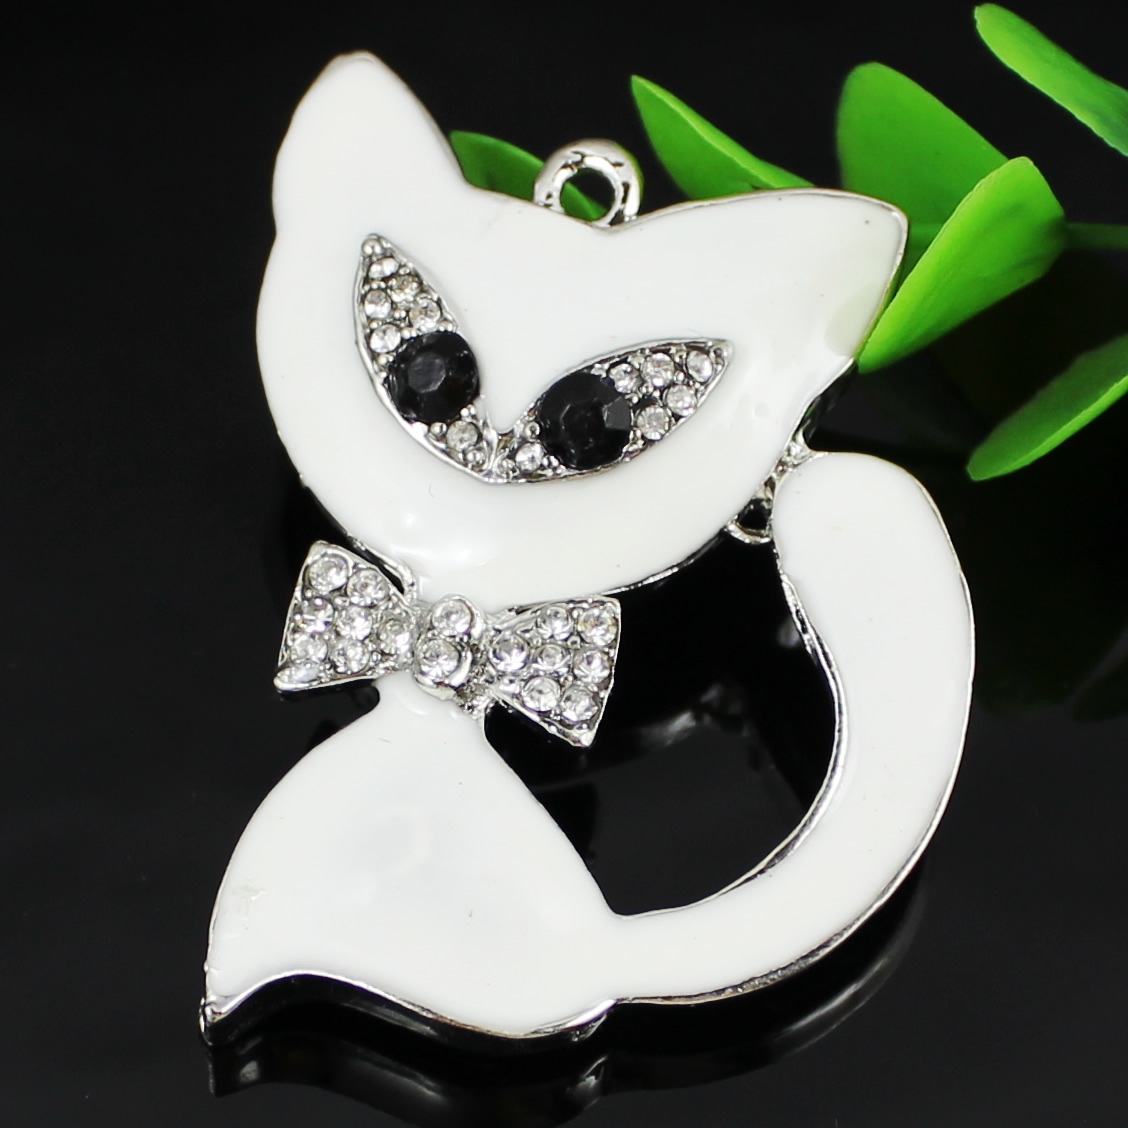 Crystal Zinc alloy Pendant, Fashion jewelry findings, Many colors for choice, Animal 56x44mm, Sold By PC